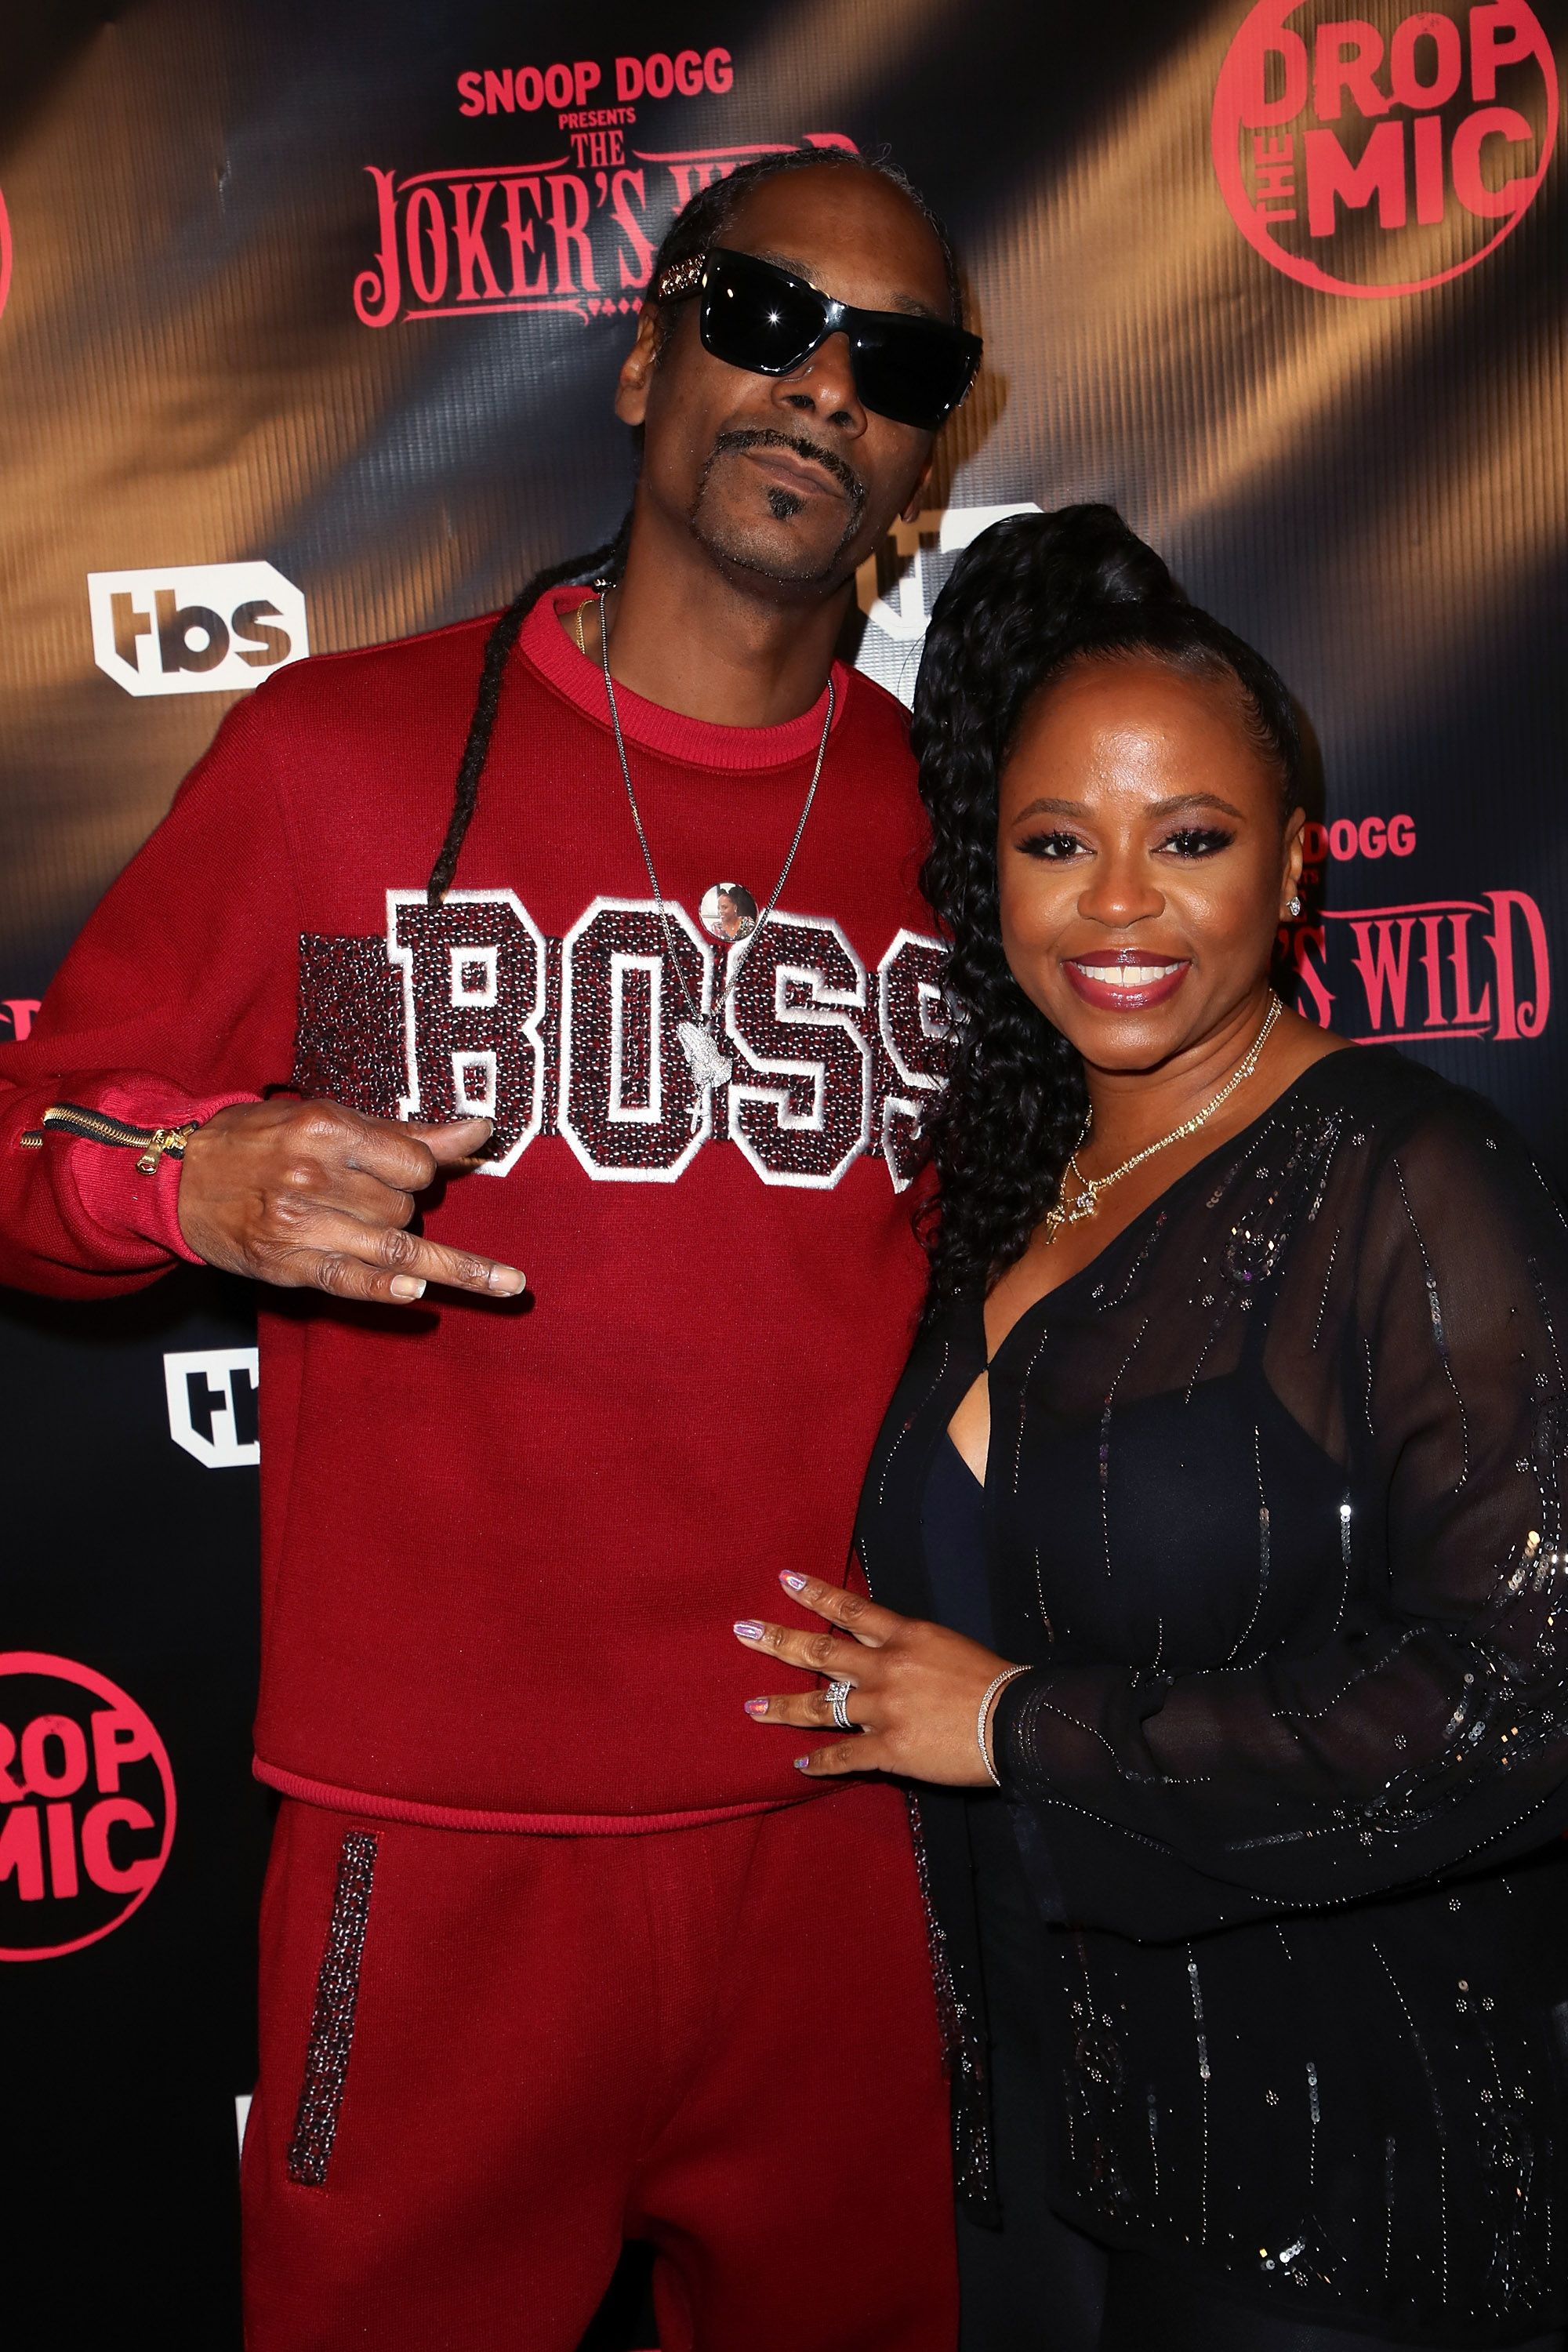 """Rapper Snoop Dogg and wife Shante Broadus at the premiere for TBS's """"Drop The Mic"""" and """"The Joker's Wild"""" at The Highlight Room on October 11, 2017 